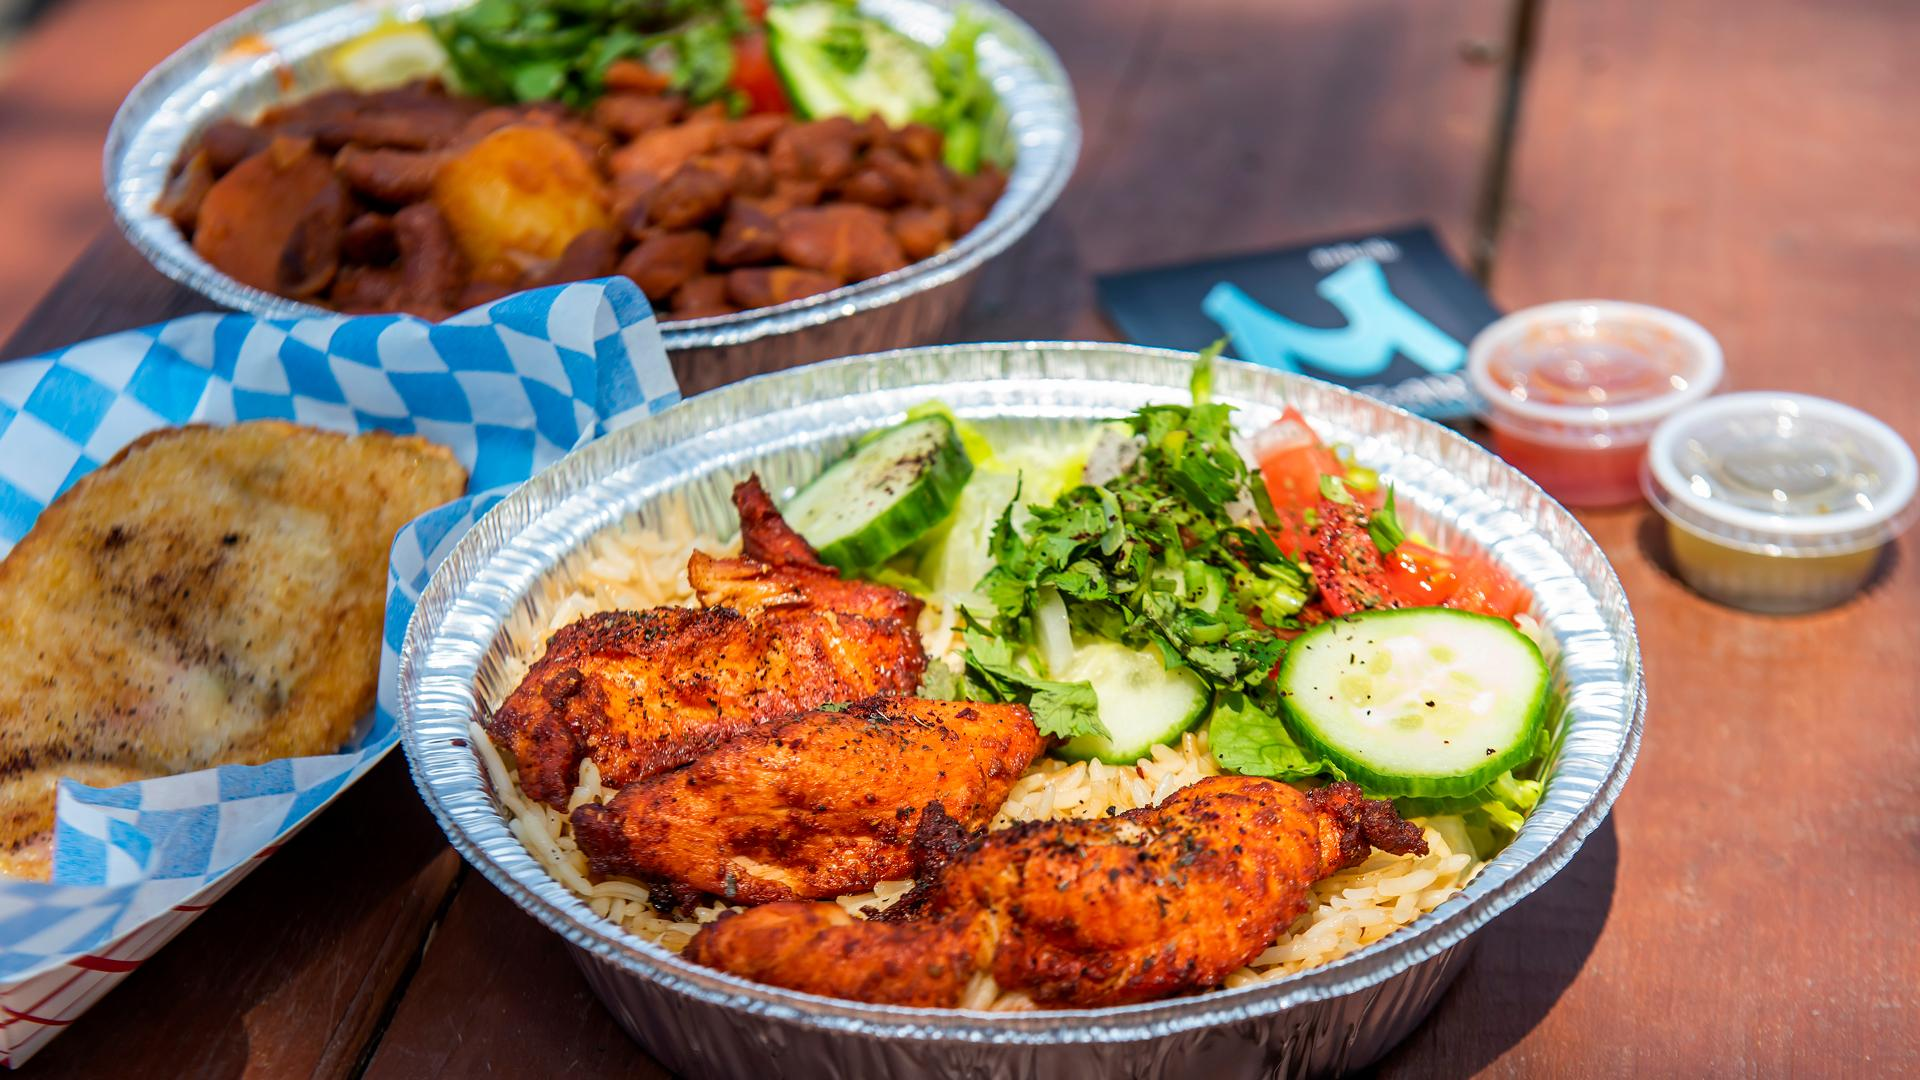 The best Toronto food markets   Chicken wings, rice and salad at Market 707